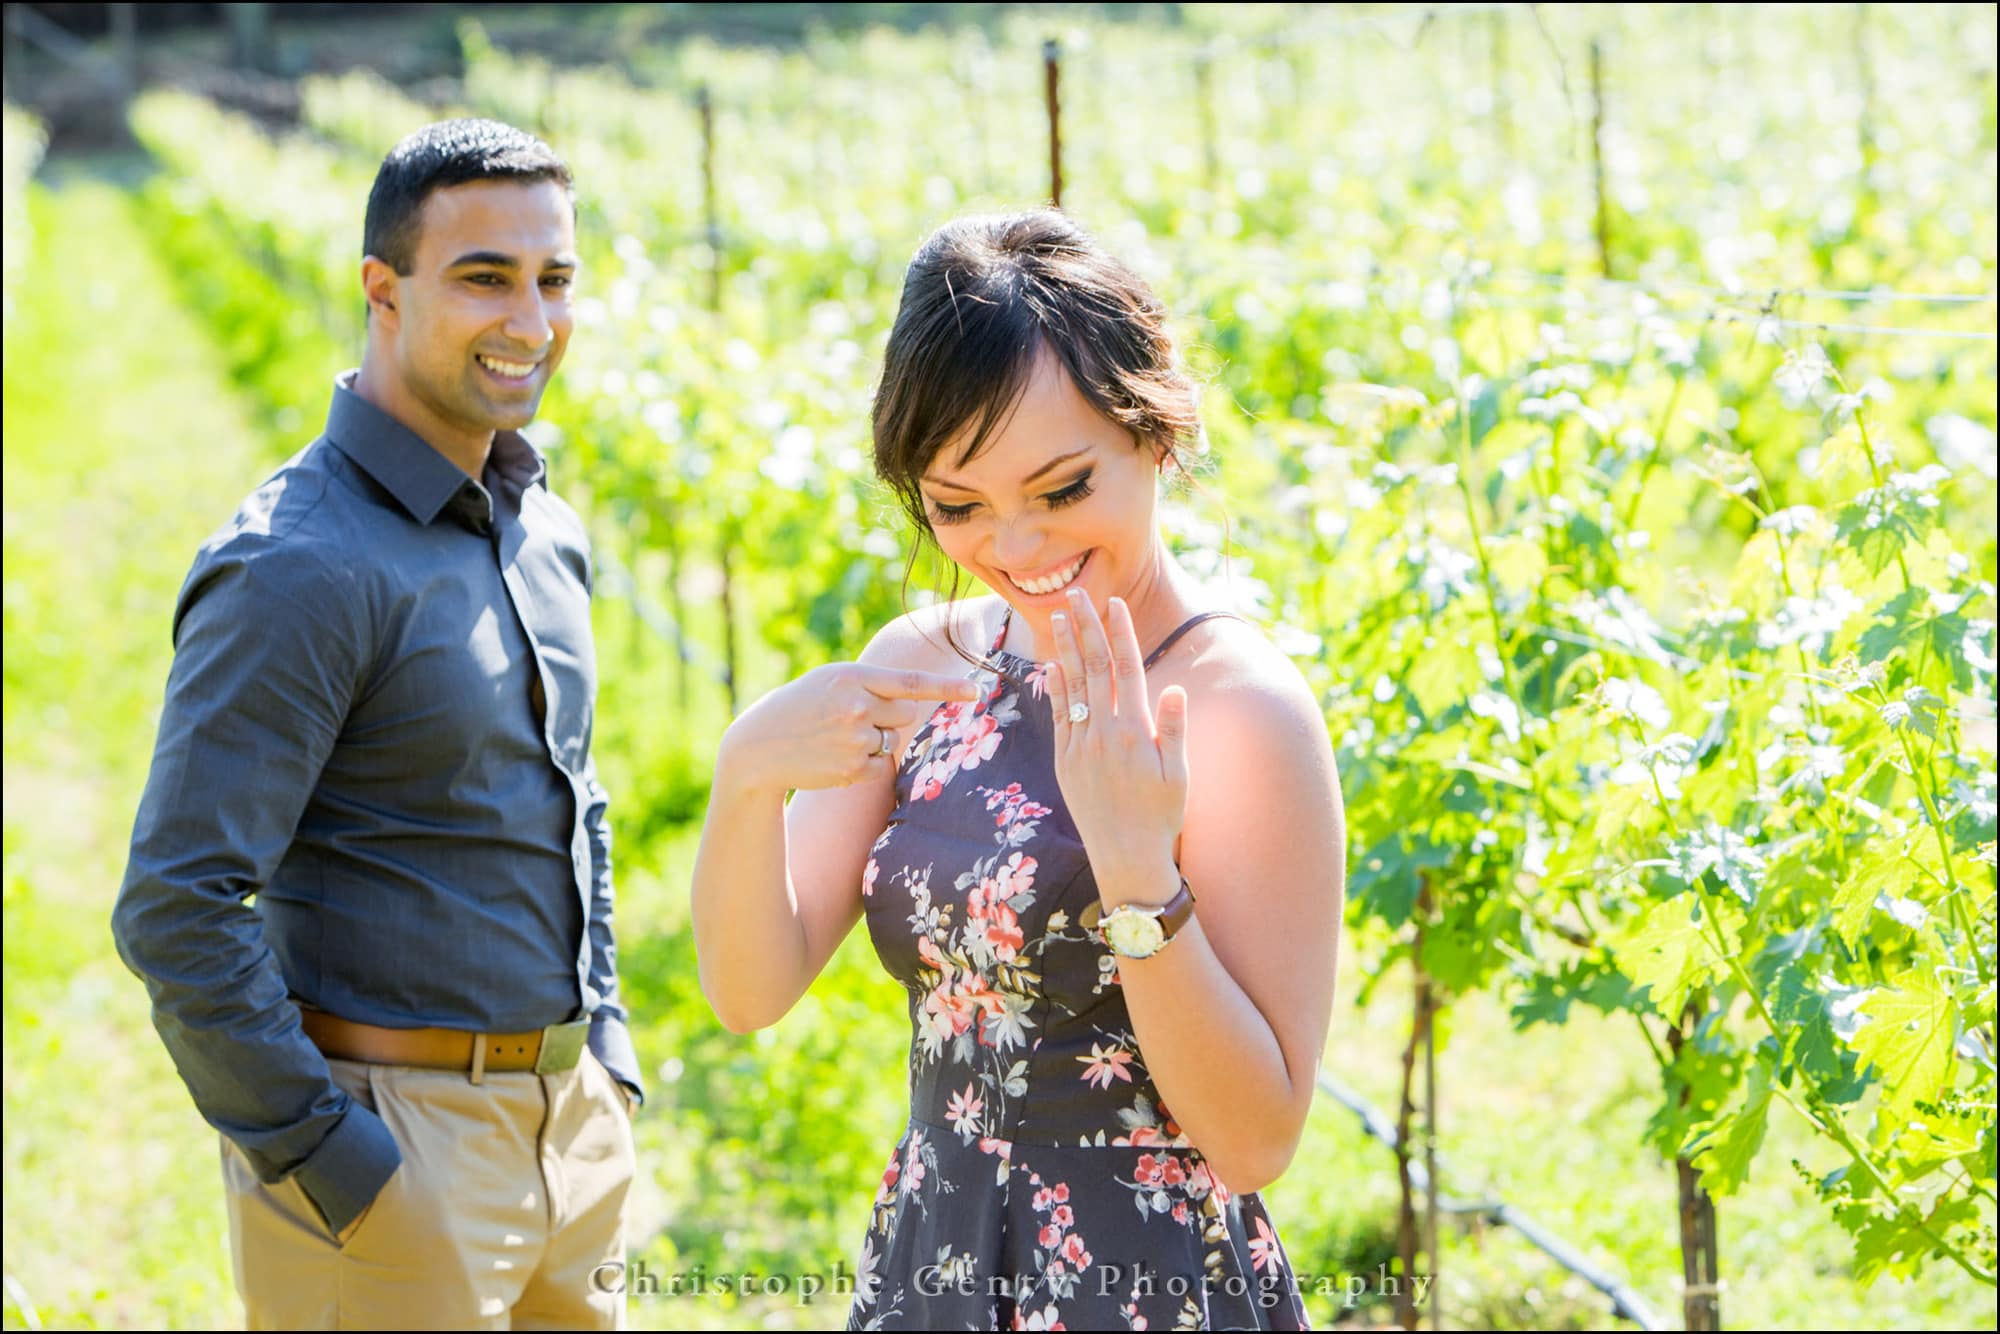 Mariage ProMarriage Proposal Photography at Bremer Winery in The Napa Valley, Californiaposal Photography in The Napa Valley - Bremer Winery